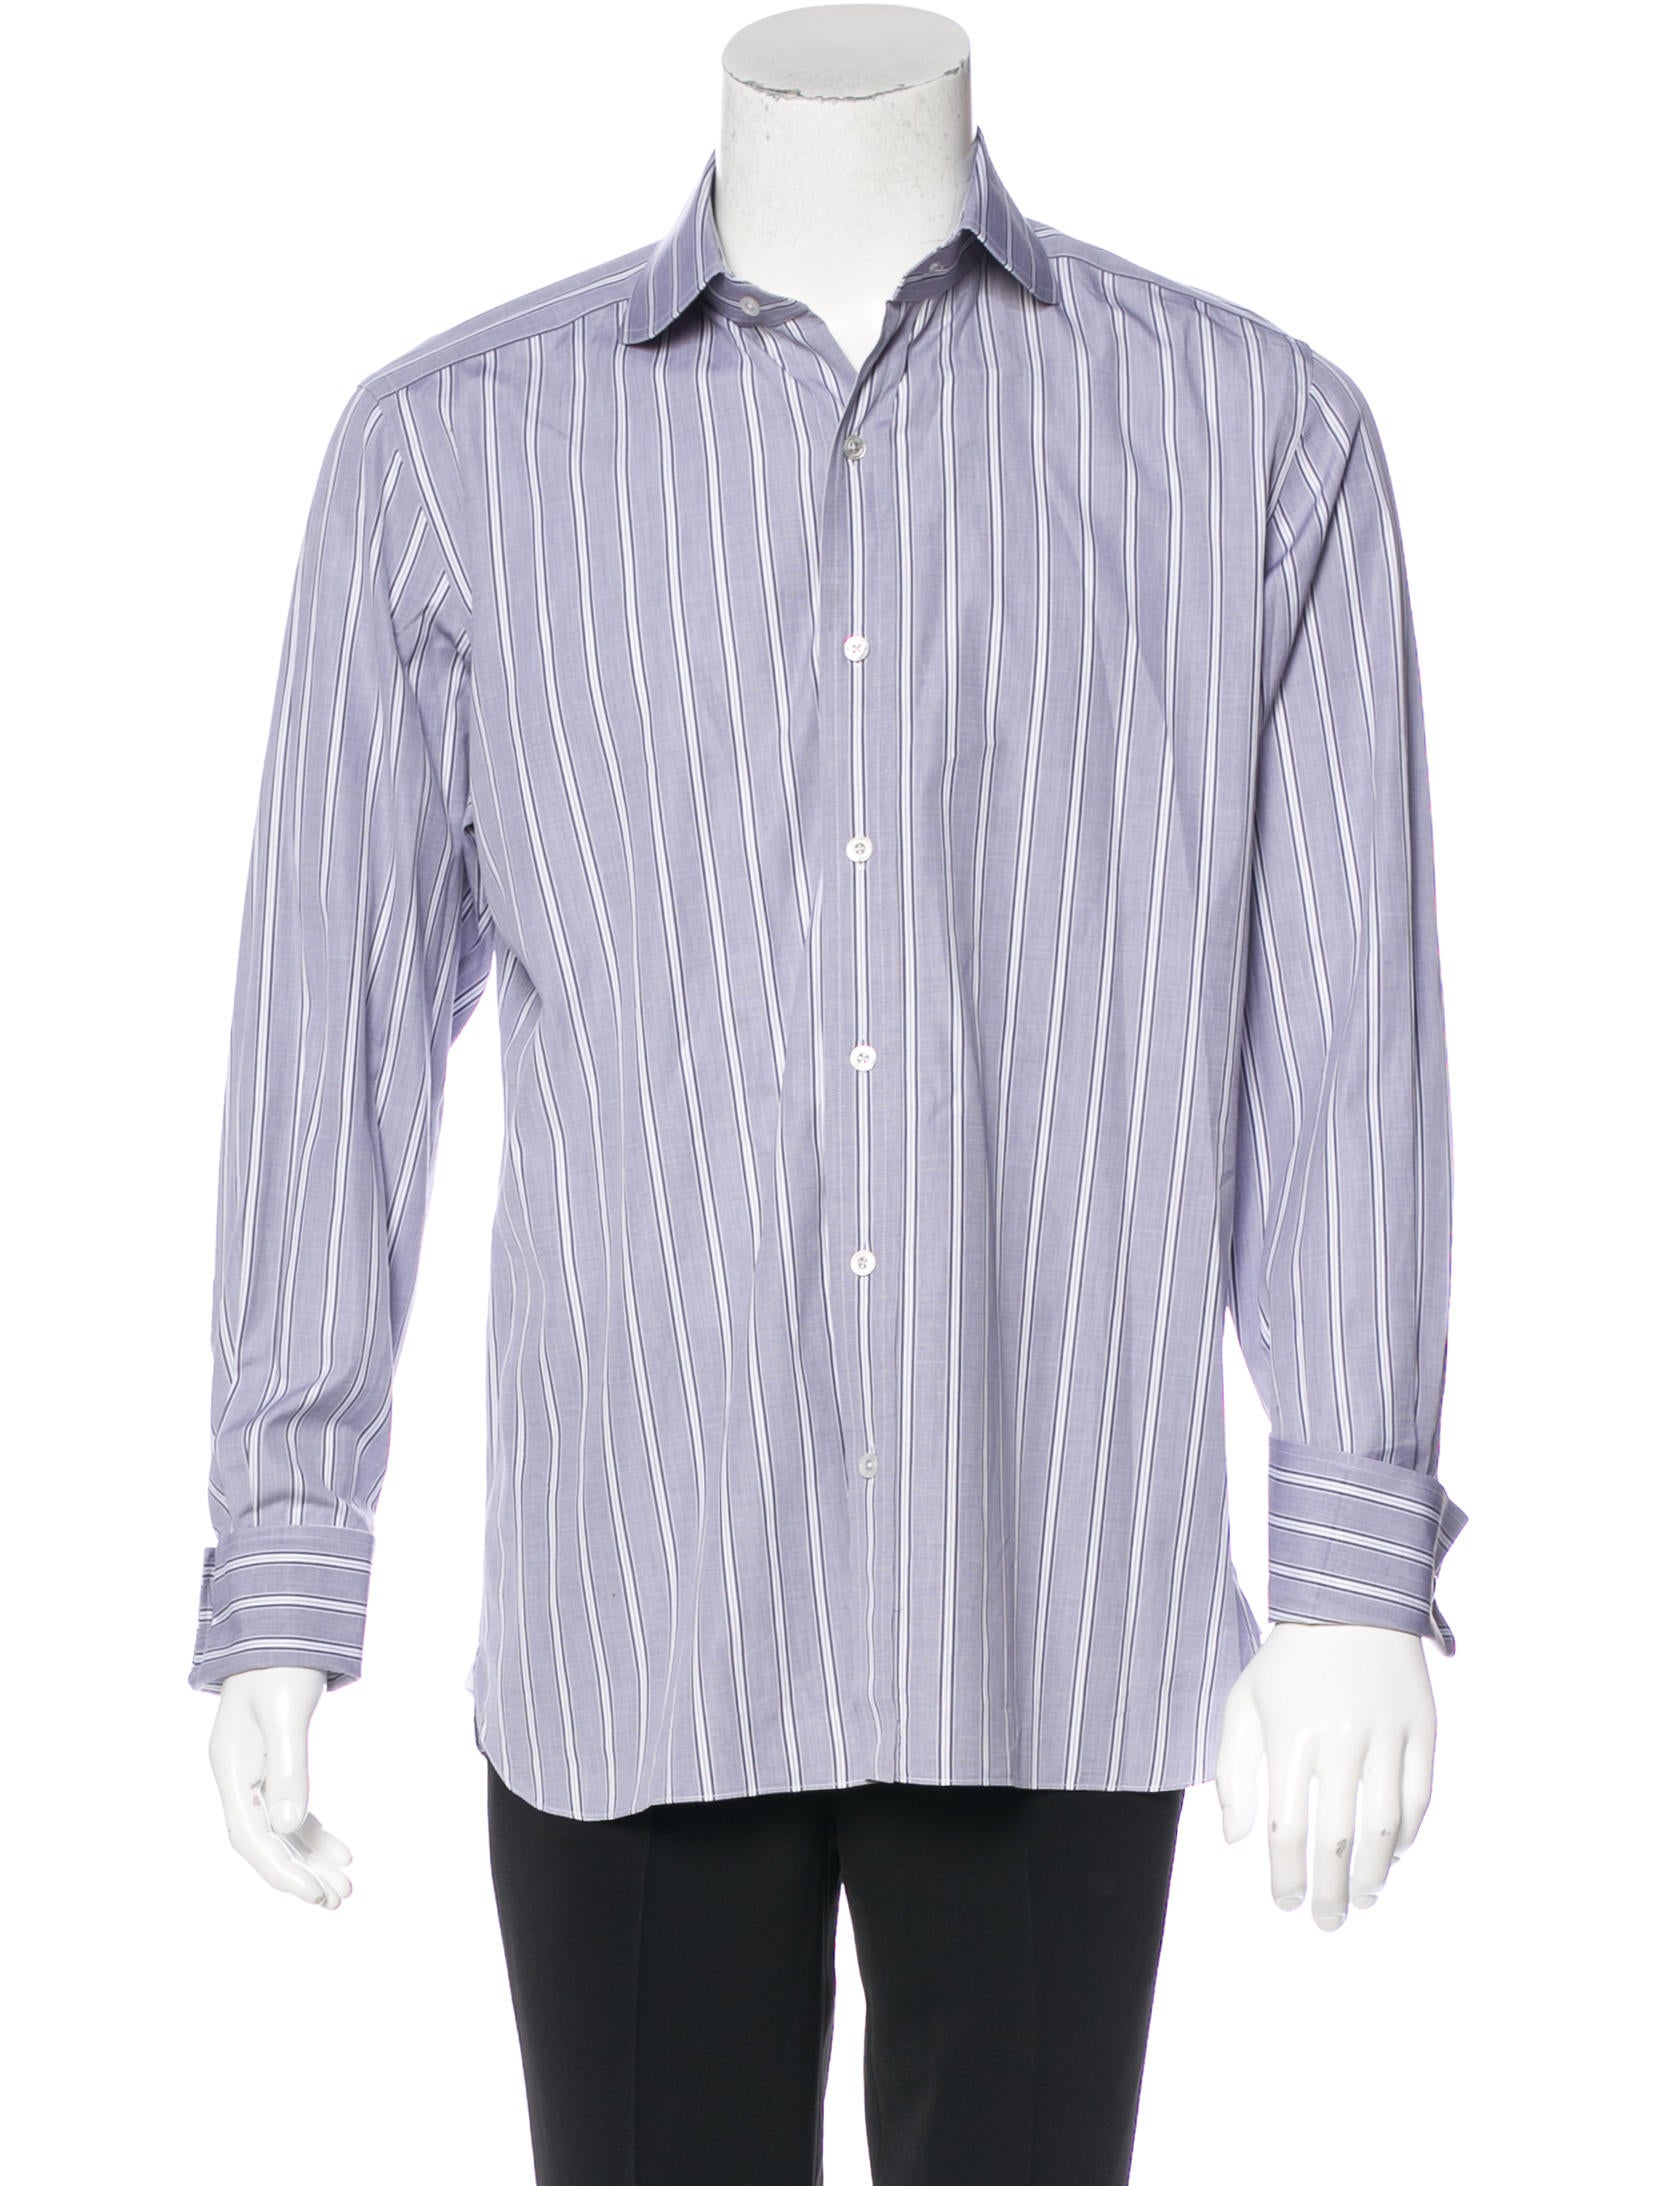 Tom Ford Striped French Cuff Dress Shirt Clothing